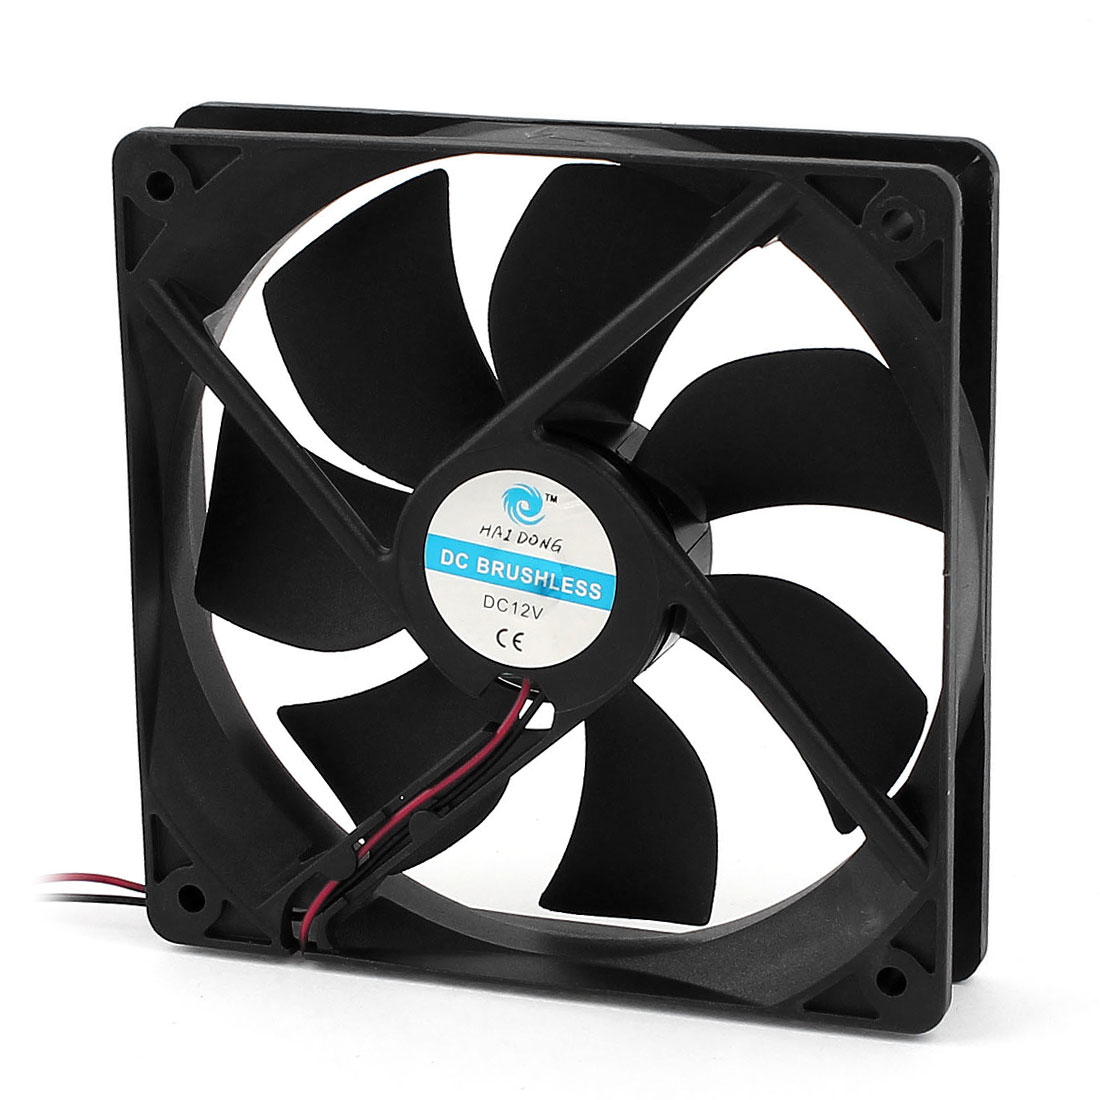 DC 12V 120x120x25mm Plastic 7 Flabellums PC Case Cooling Fan w Dustproof Mesh Filter